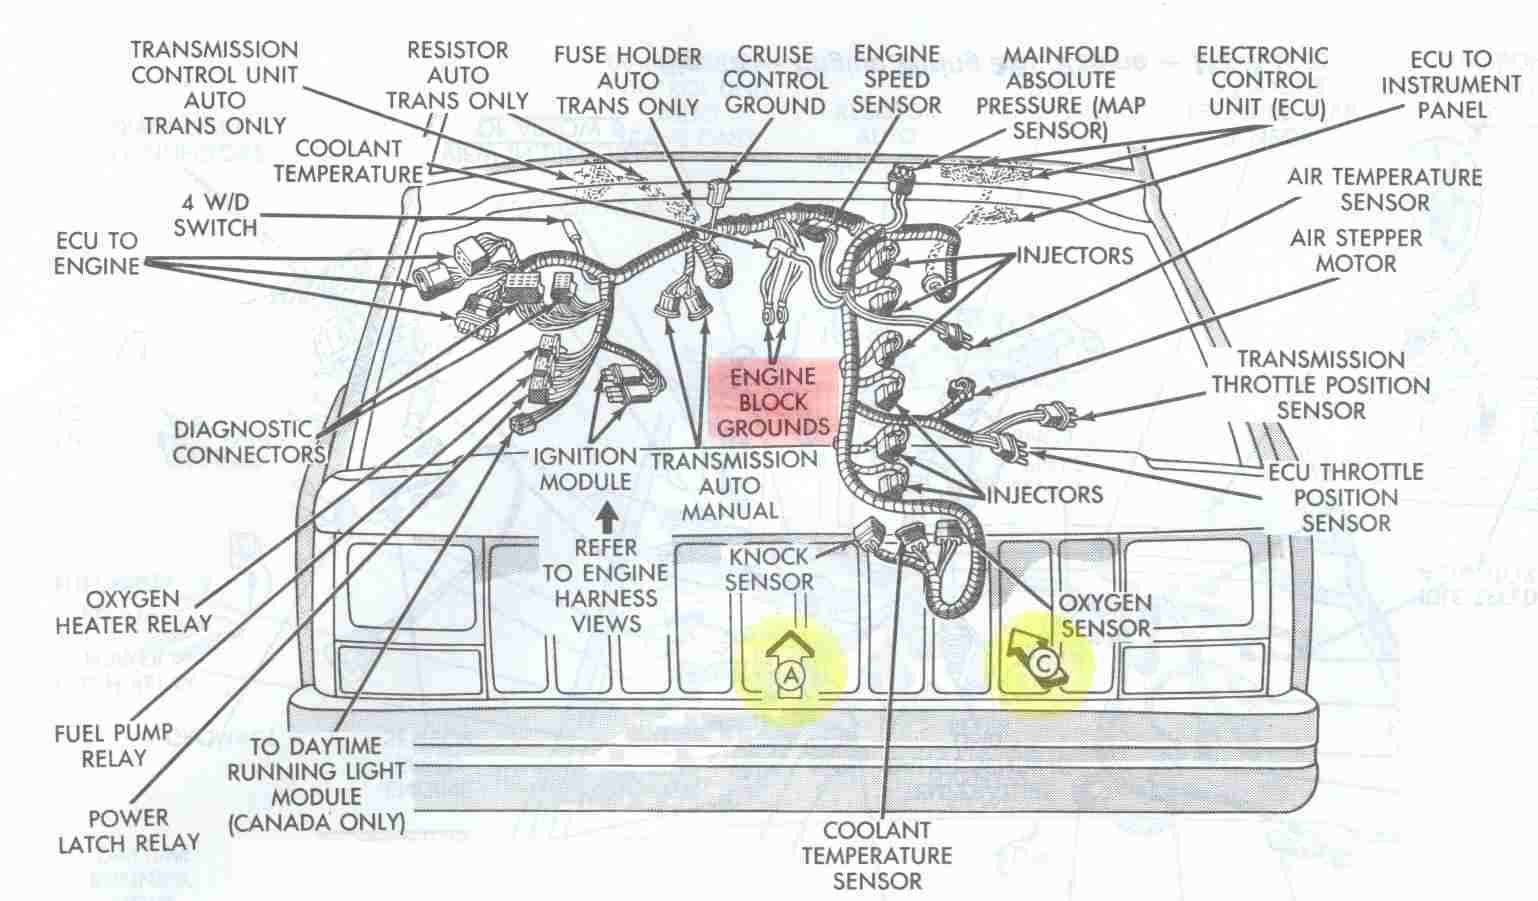 1991 jeep comanche alternator wiring diagram wiring library1991 jeep comanche alternator wiring diagram [ 1538 x 901 Pixel ]